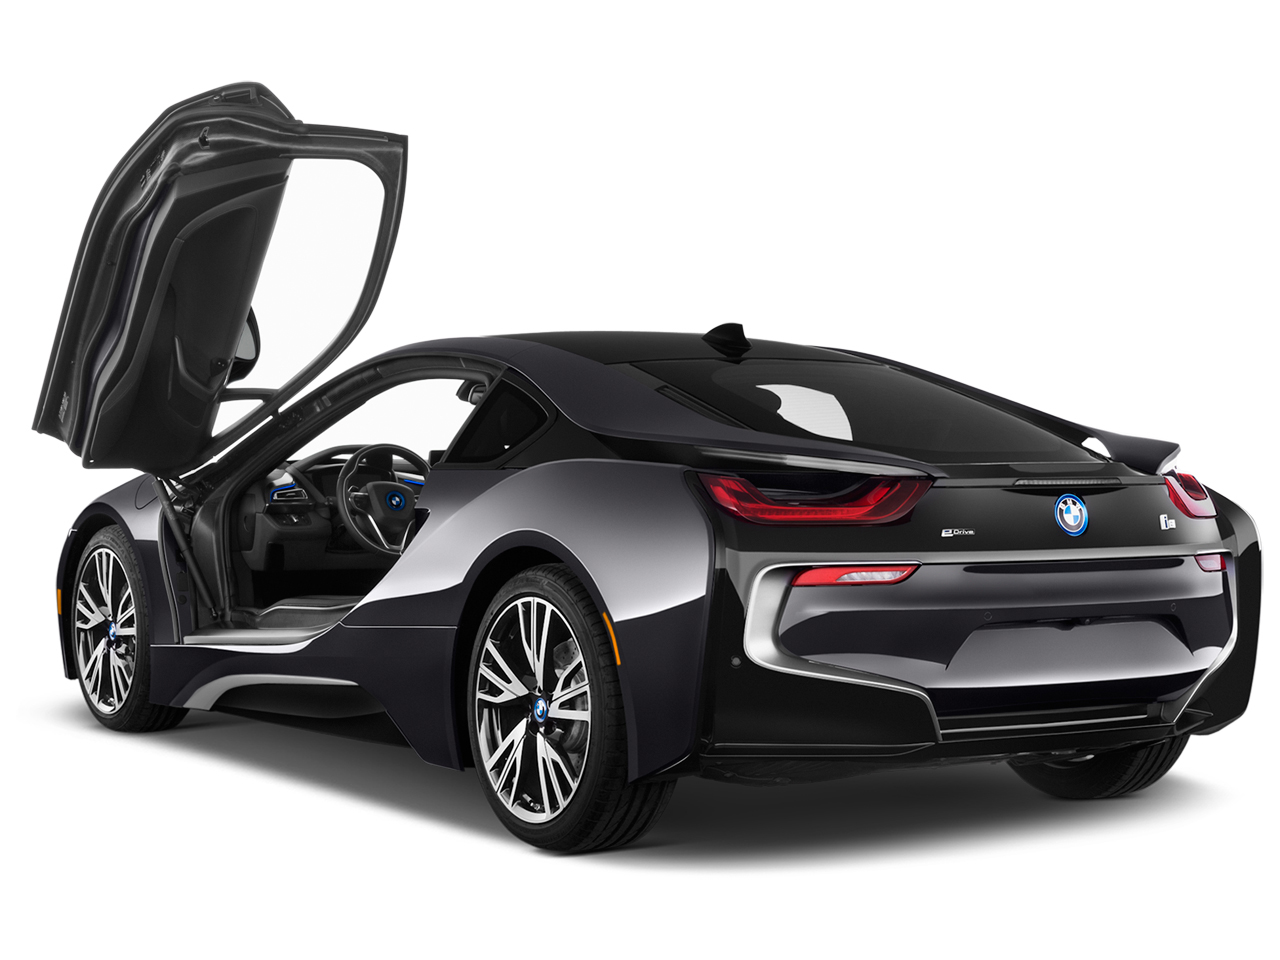 Bmw I8 2019 Plug In Hybrid In Qatar New Car Prices Specs Reviews